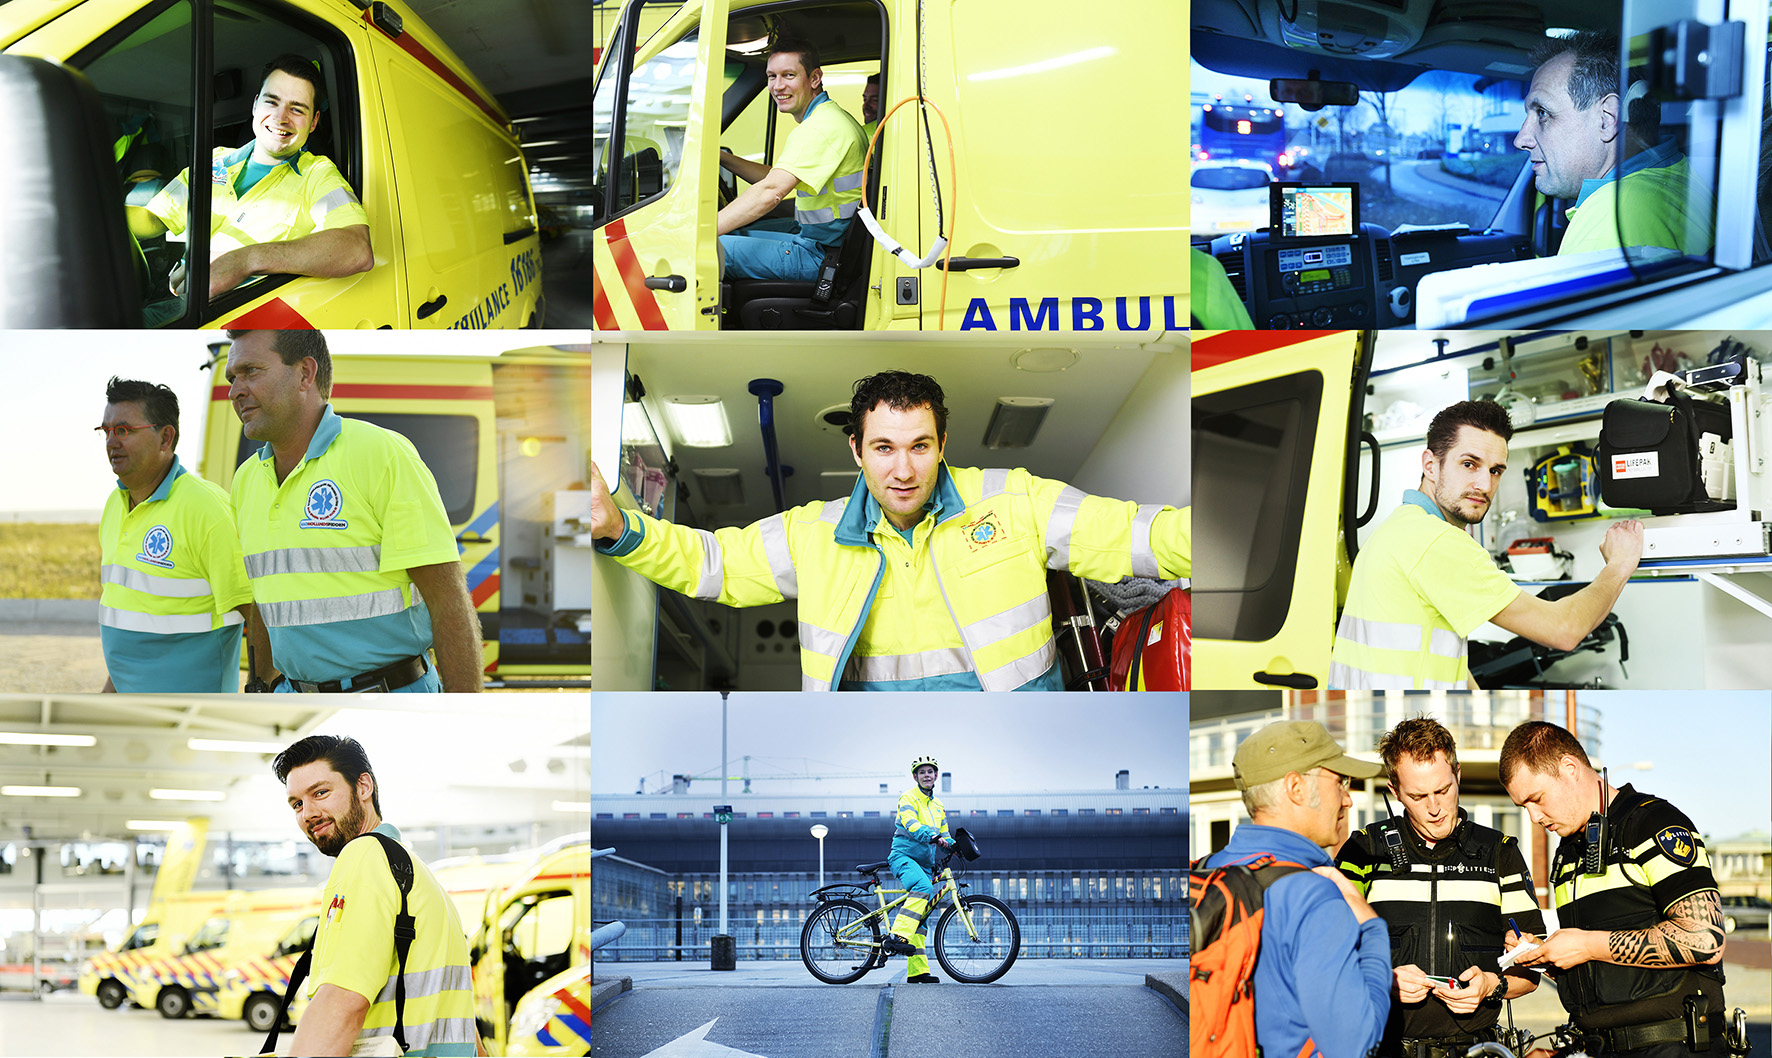 Ambulancedienst RAV HM, corporate images>2018